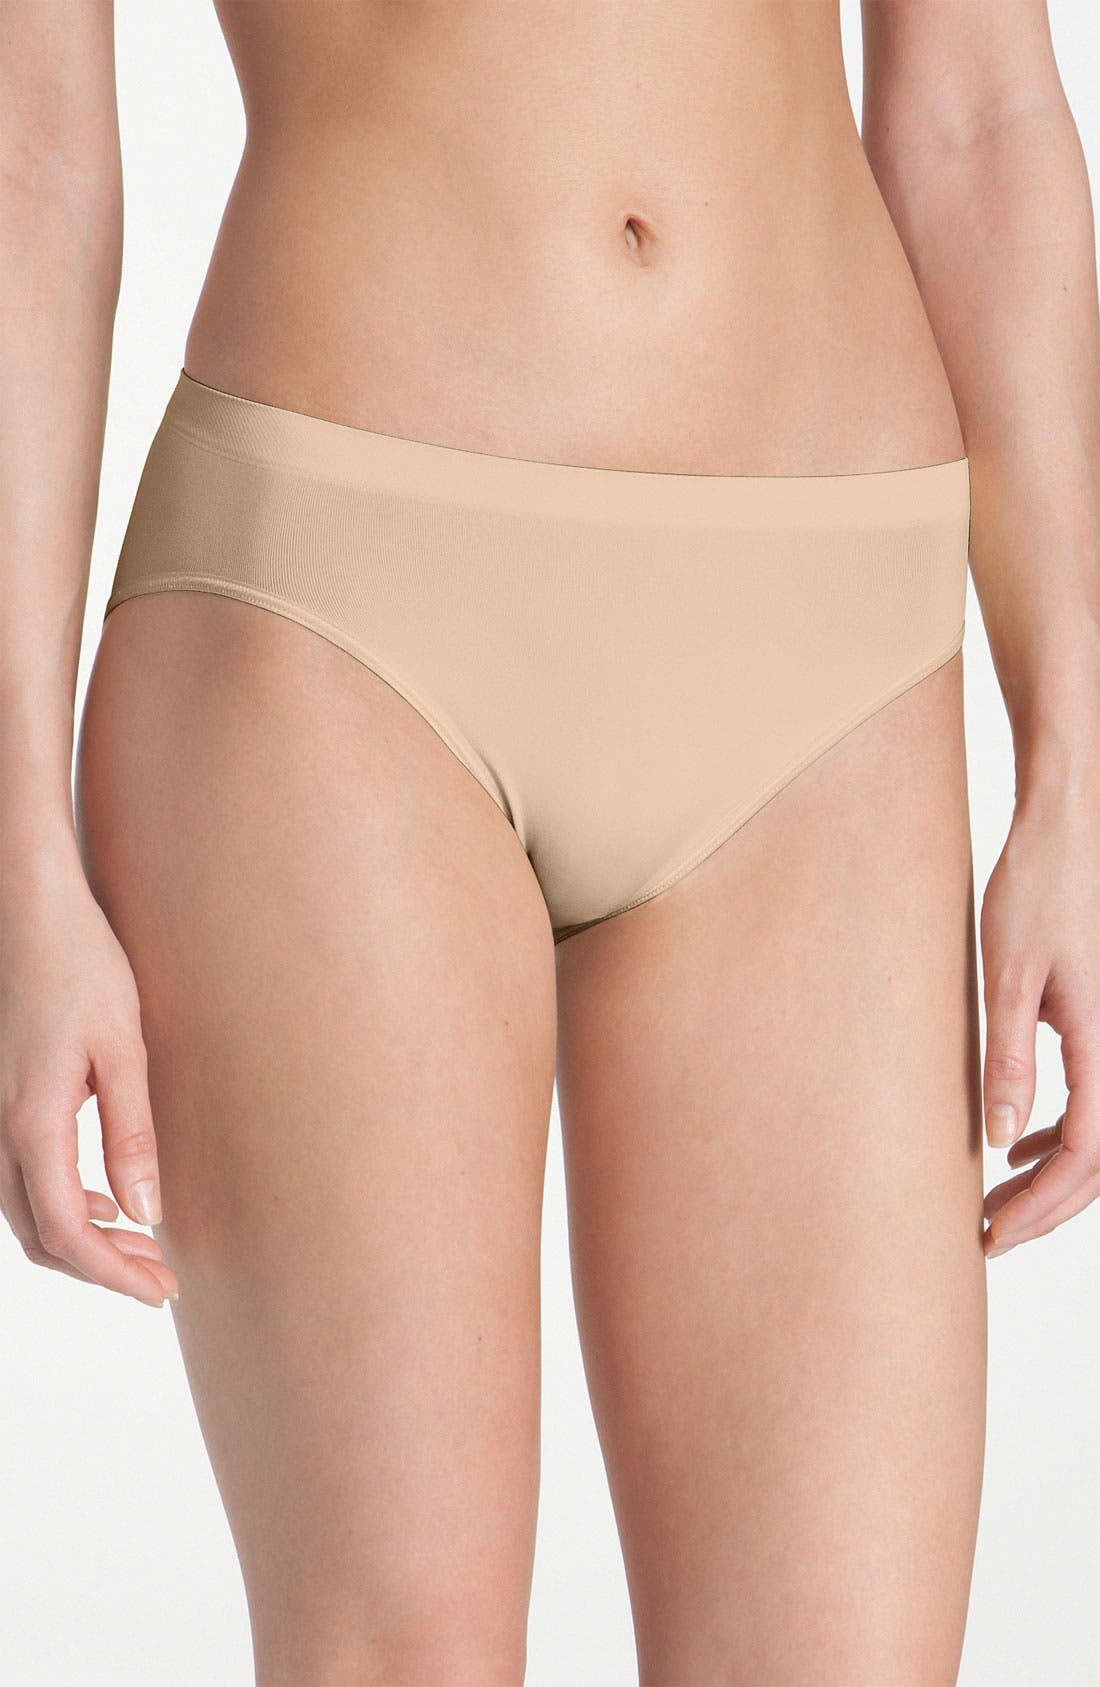 Alternate Image 1 Selected - Hanro 'Touch Feeling' High Cut Briefs